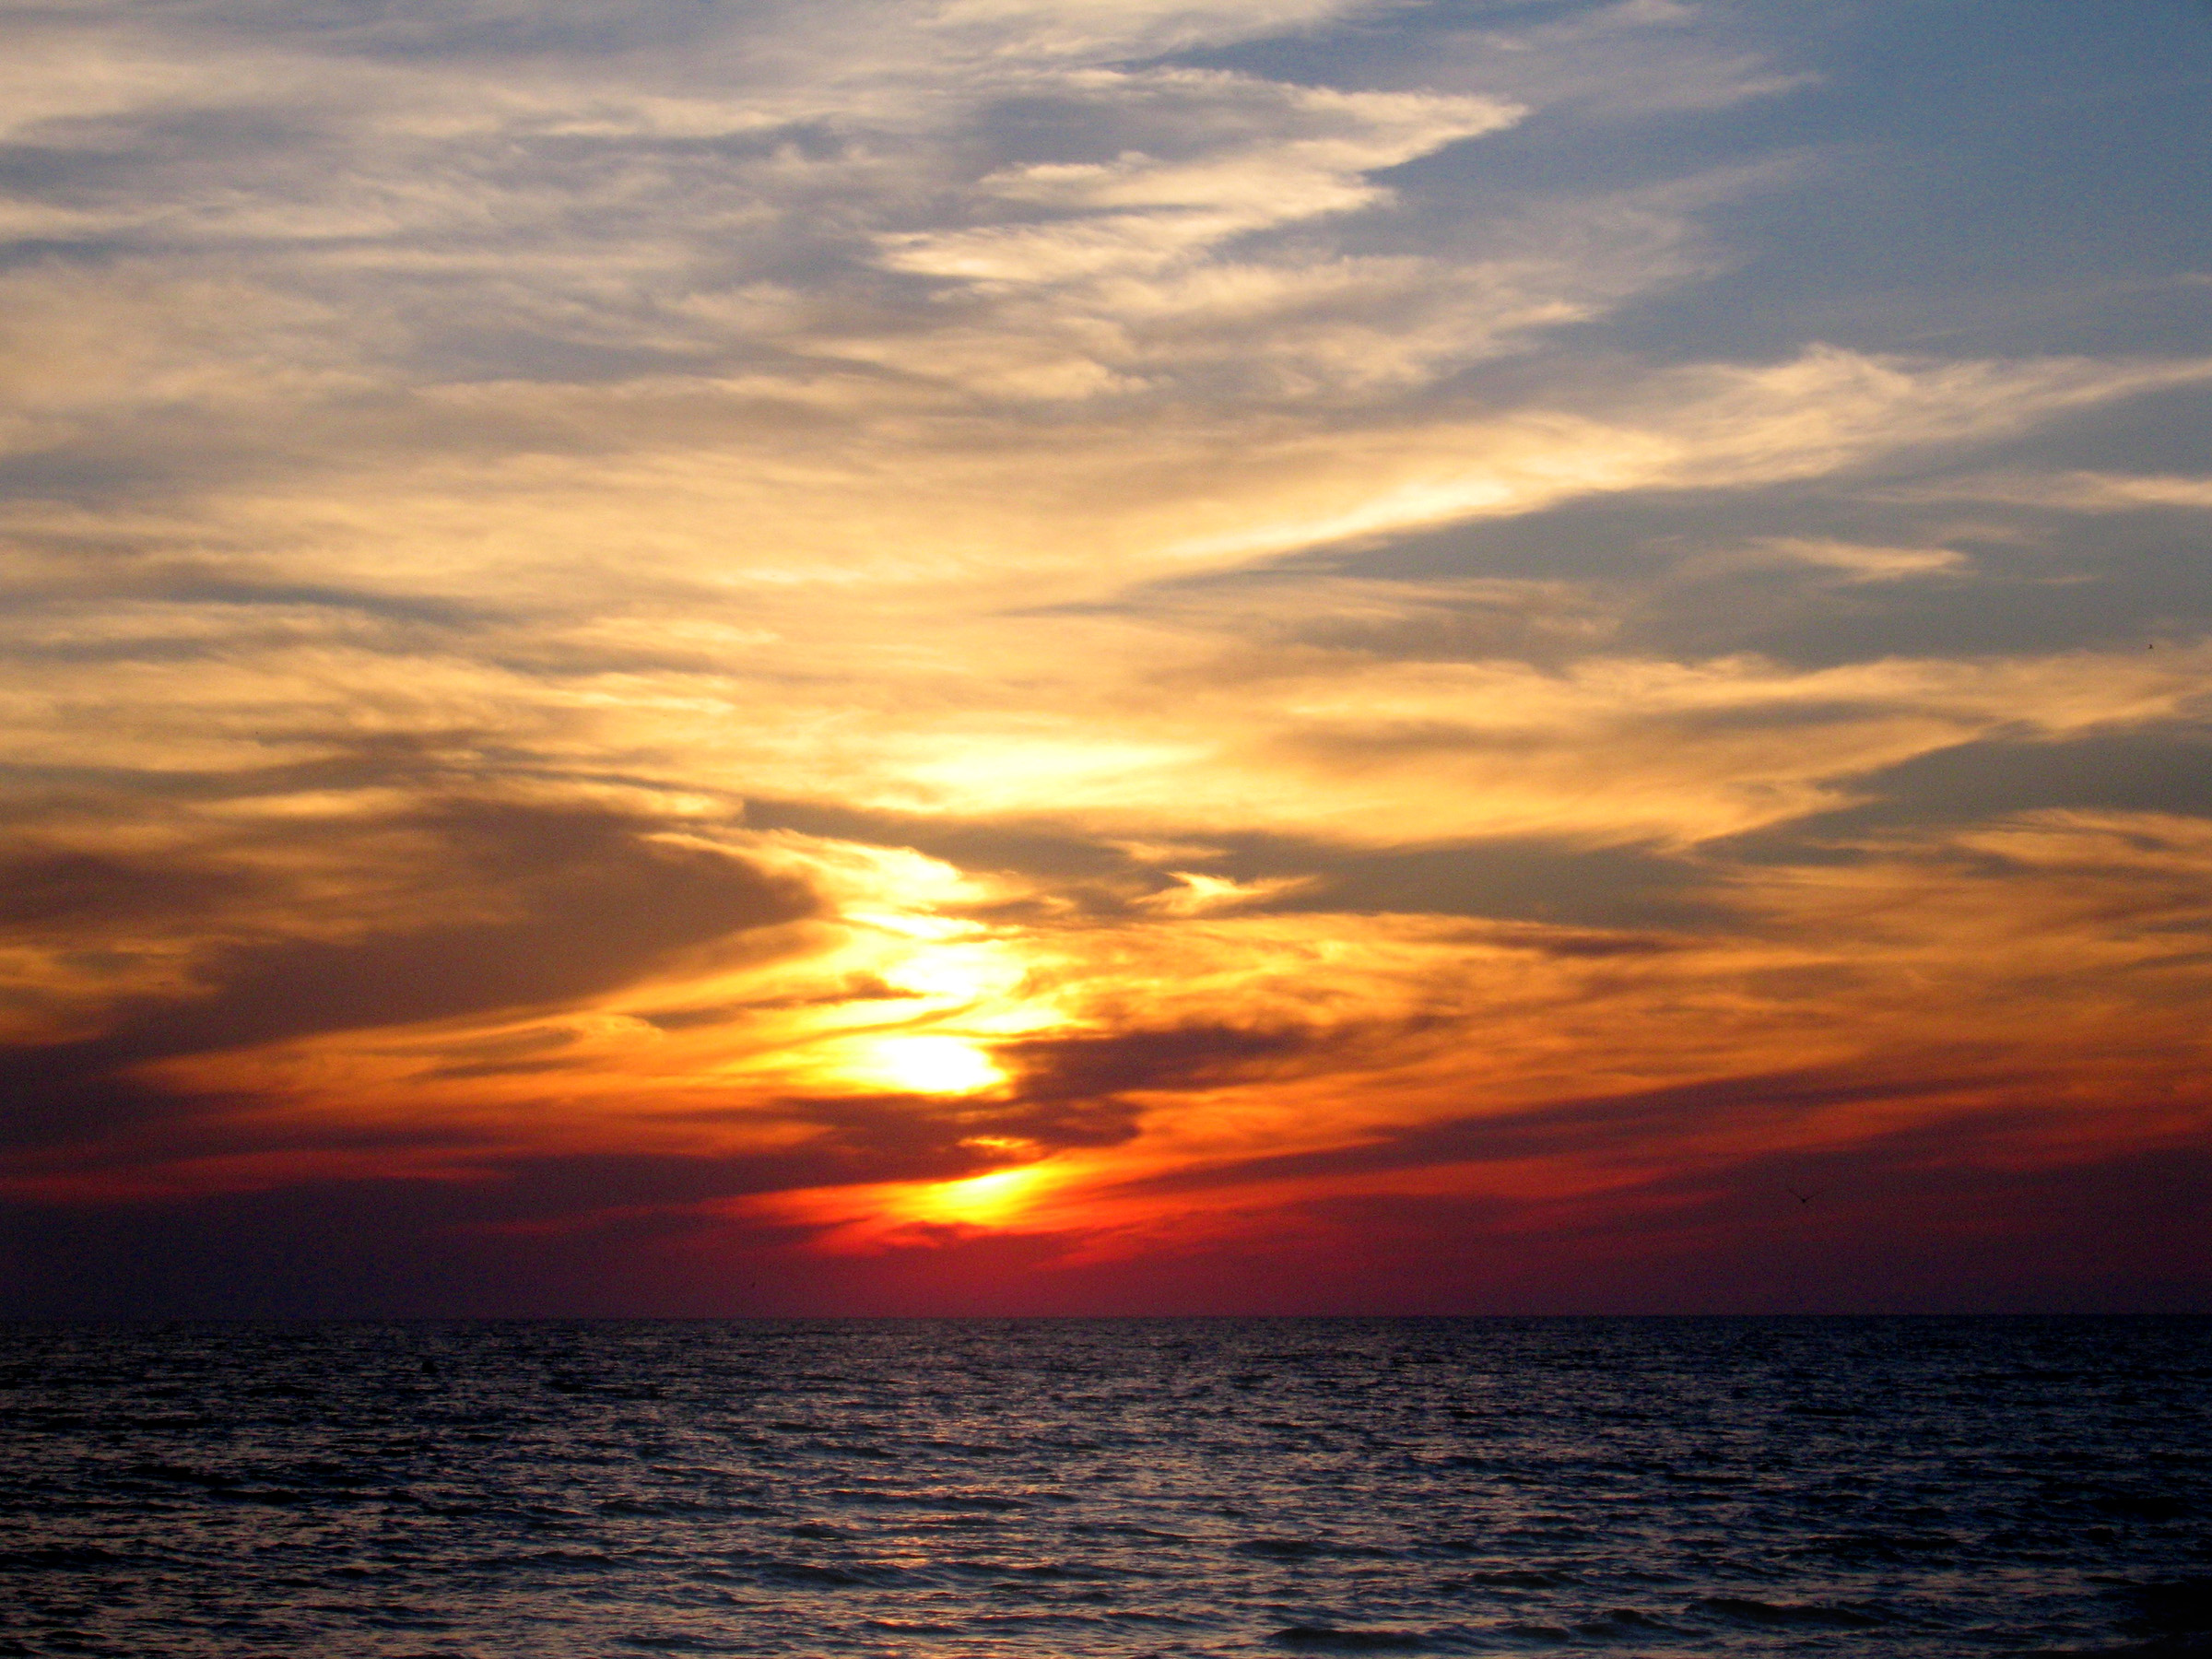 Ocean Sunset, Sunset, Travel, Vacation, Water, HQ Photo